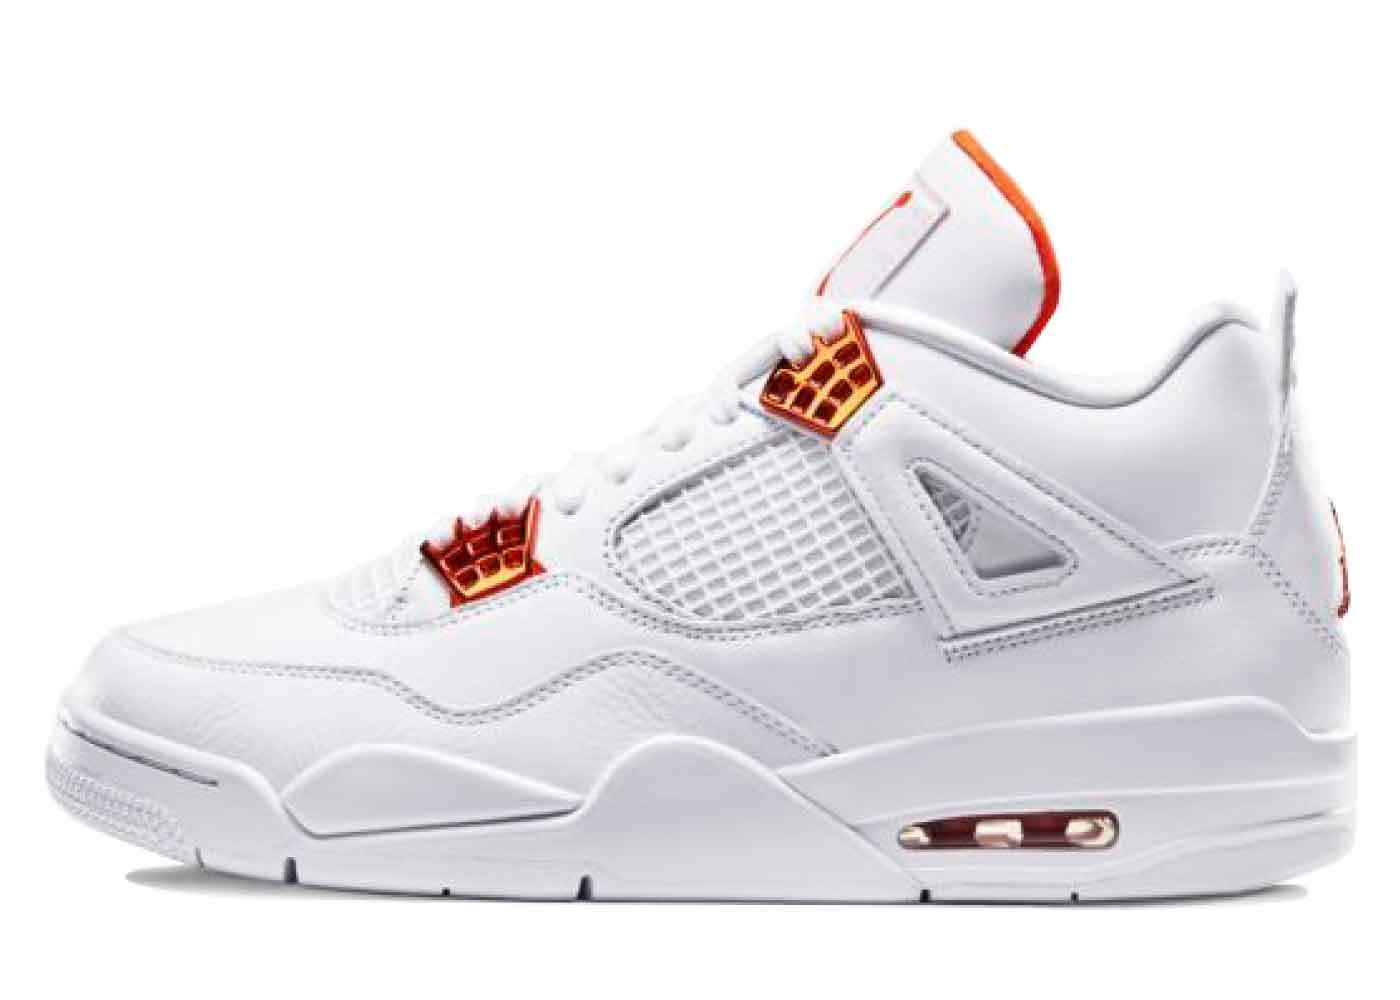 Nike Air Jordan 4 Retro Metallic Orangeの写真